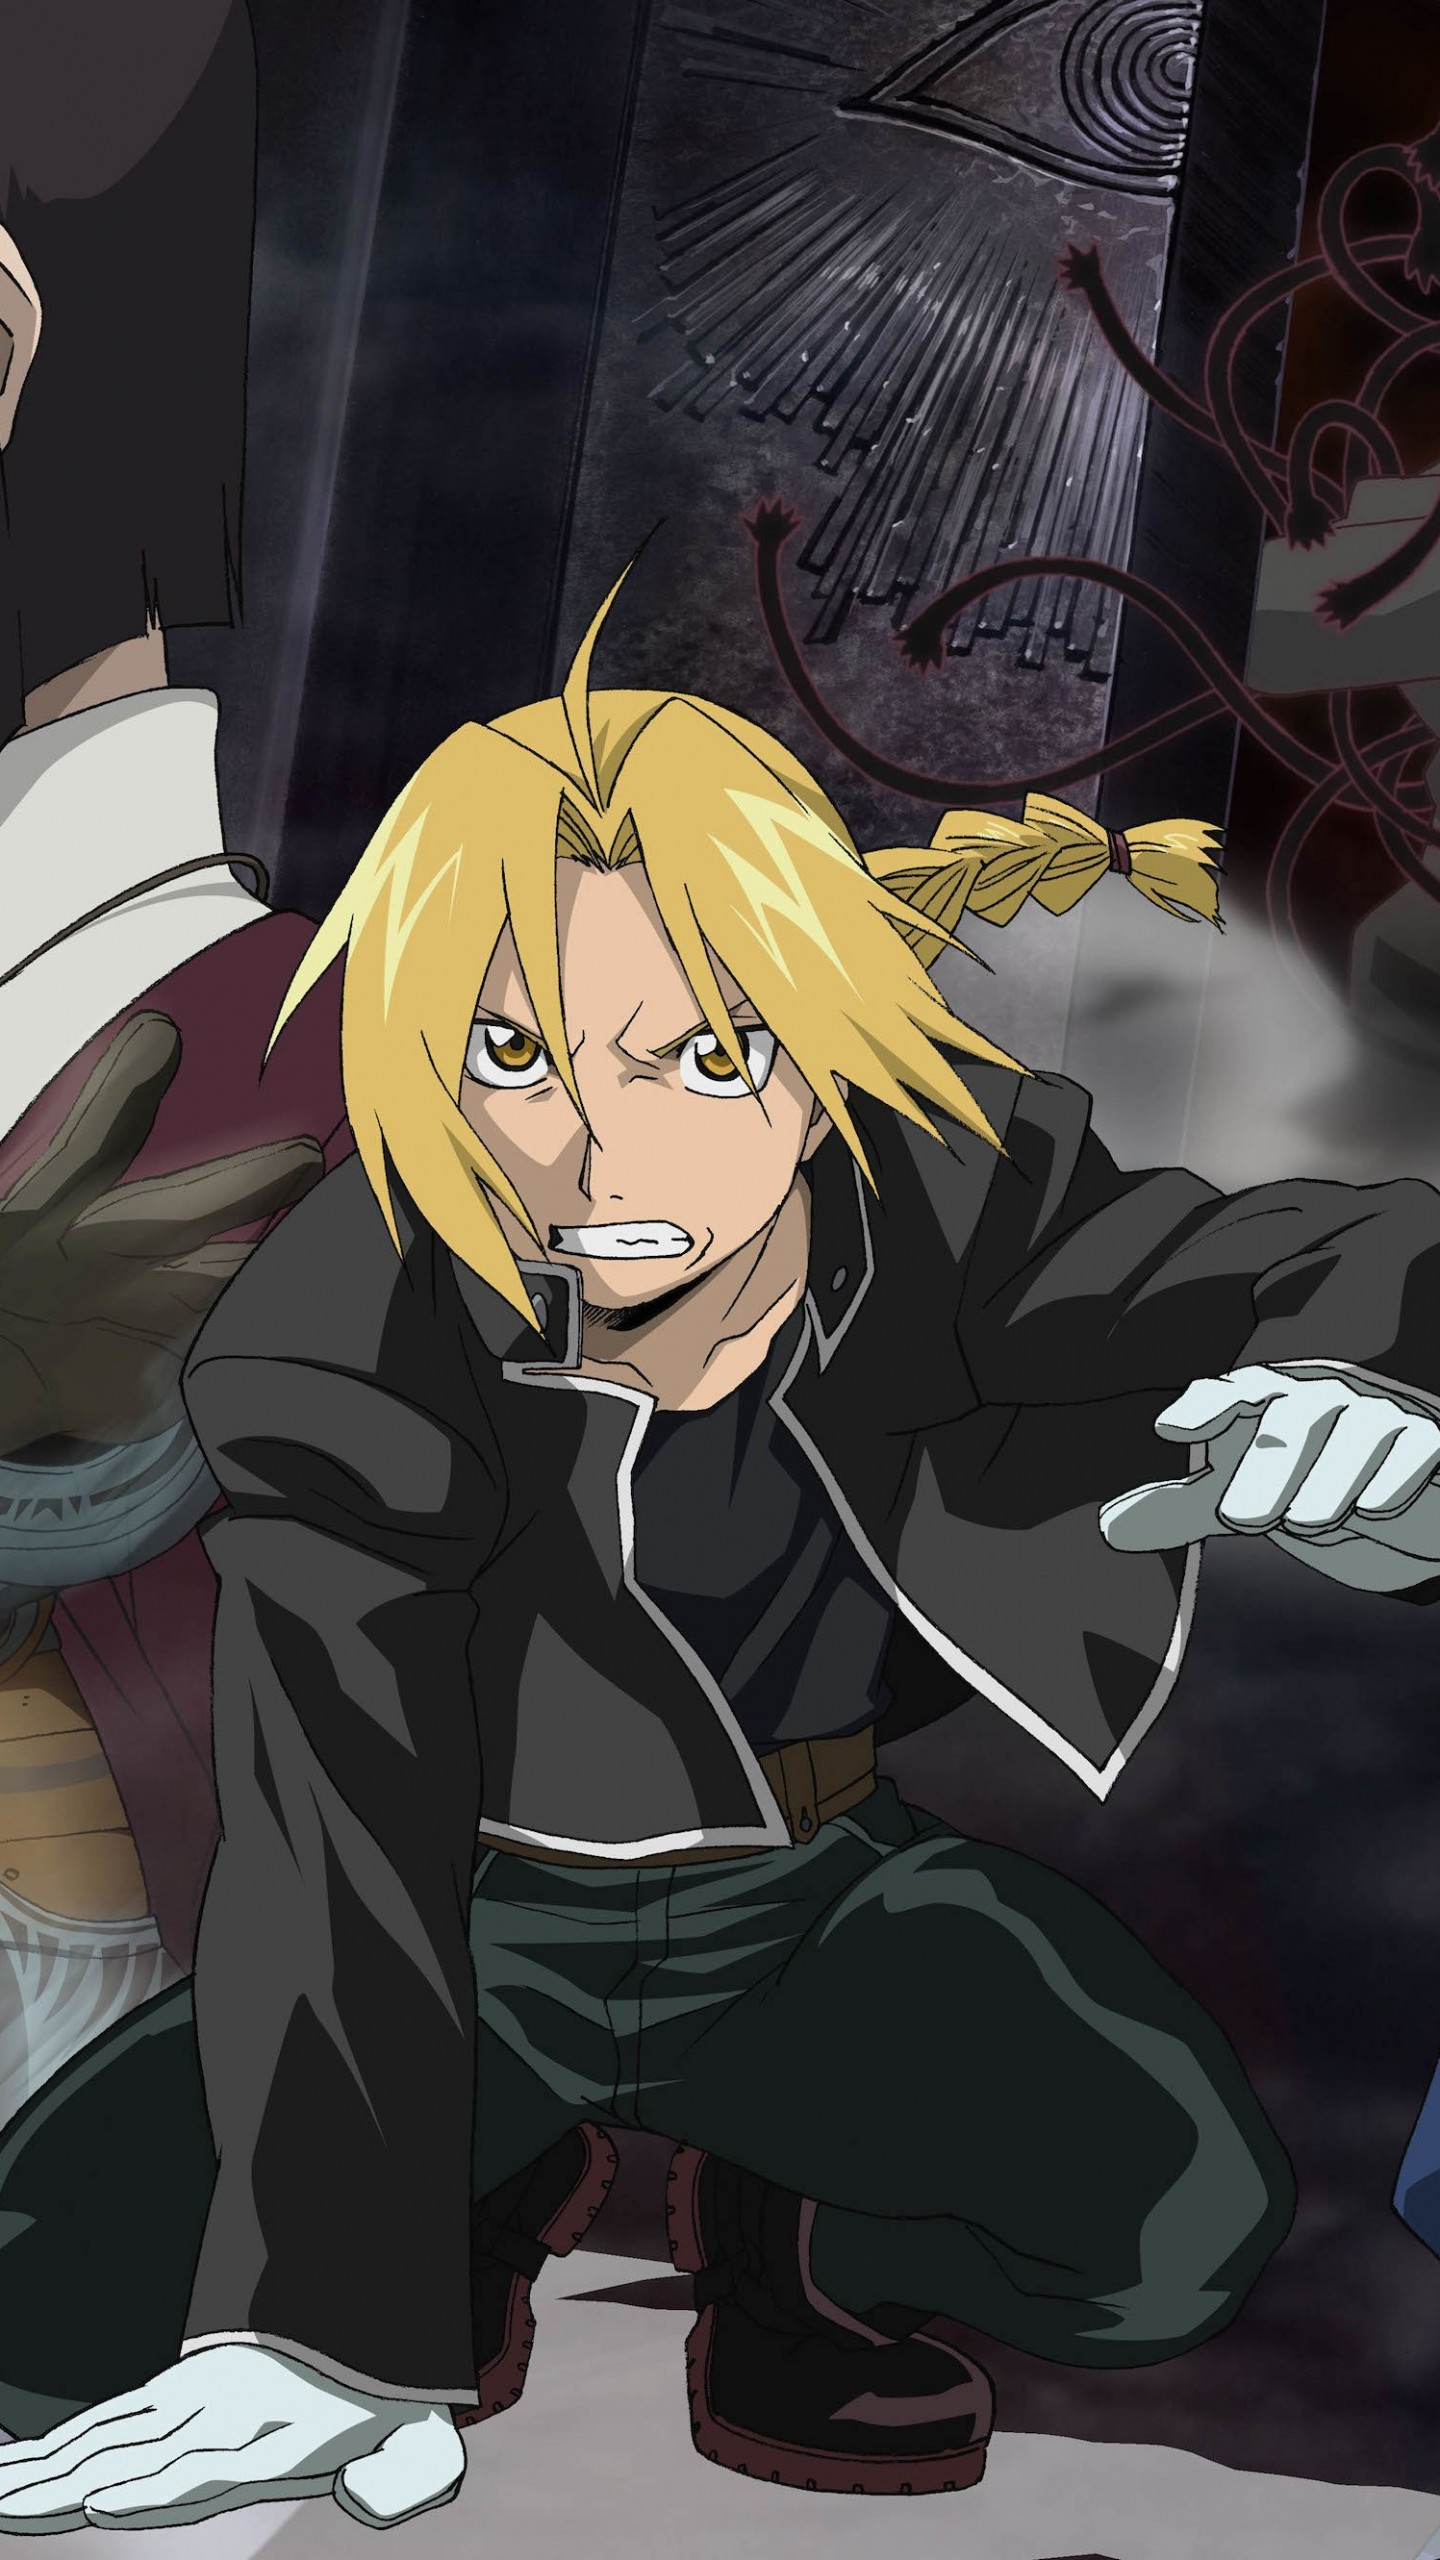 Fullmetal Alchemist Wallpaper For Samsung Galaxy S6 133 504 additionally Two Leaves Galaxy S5 Wallpapers additionally Zoom 1631642 1923161 Galaxy S7 Taille Ecran likewise Clanek 19849 as well 15. on samsung galaxy s6